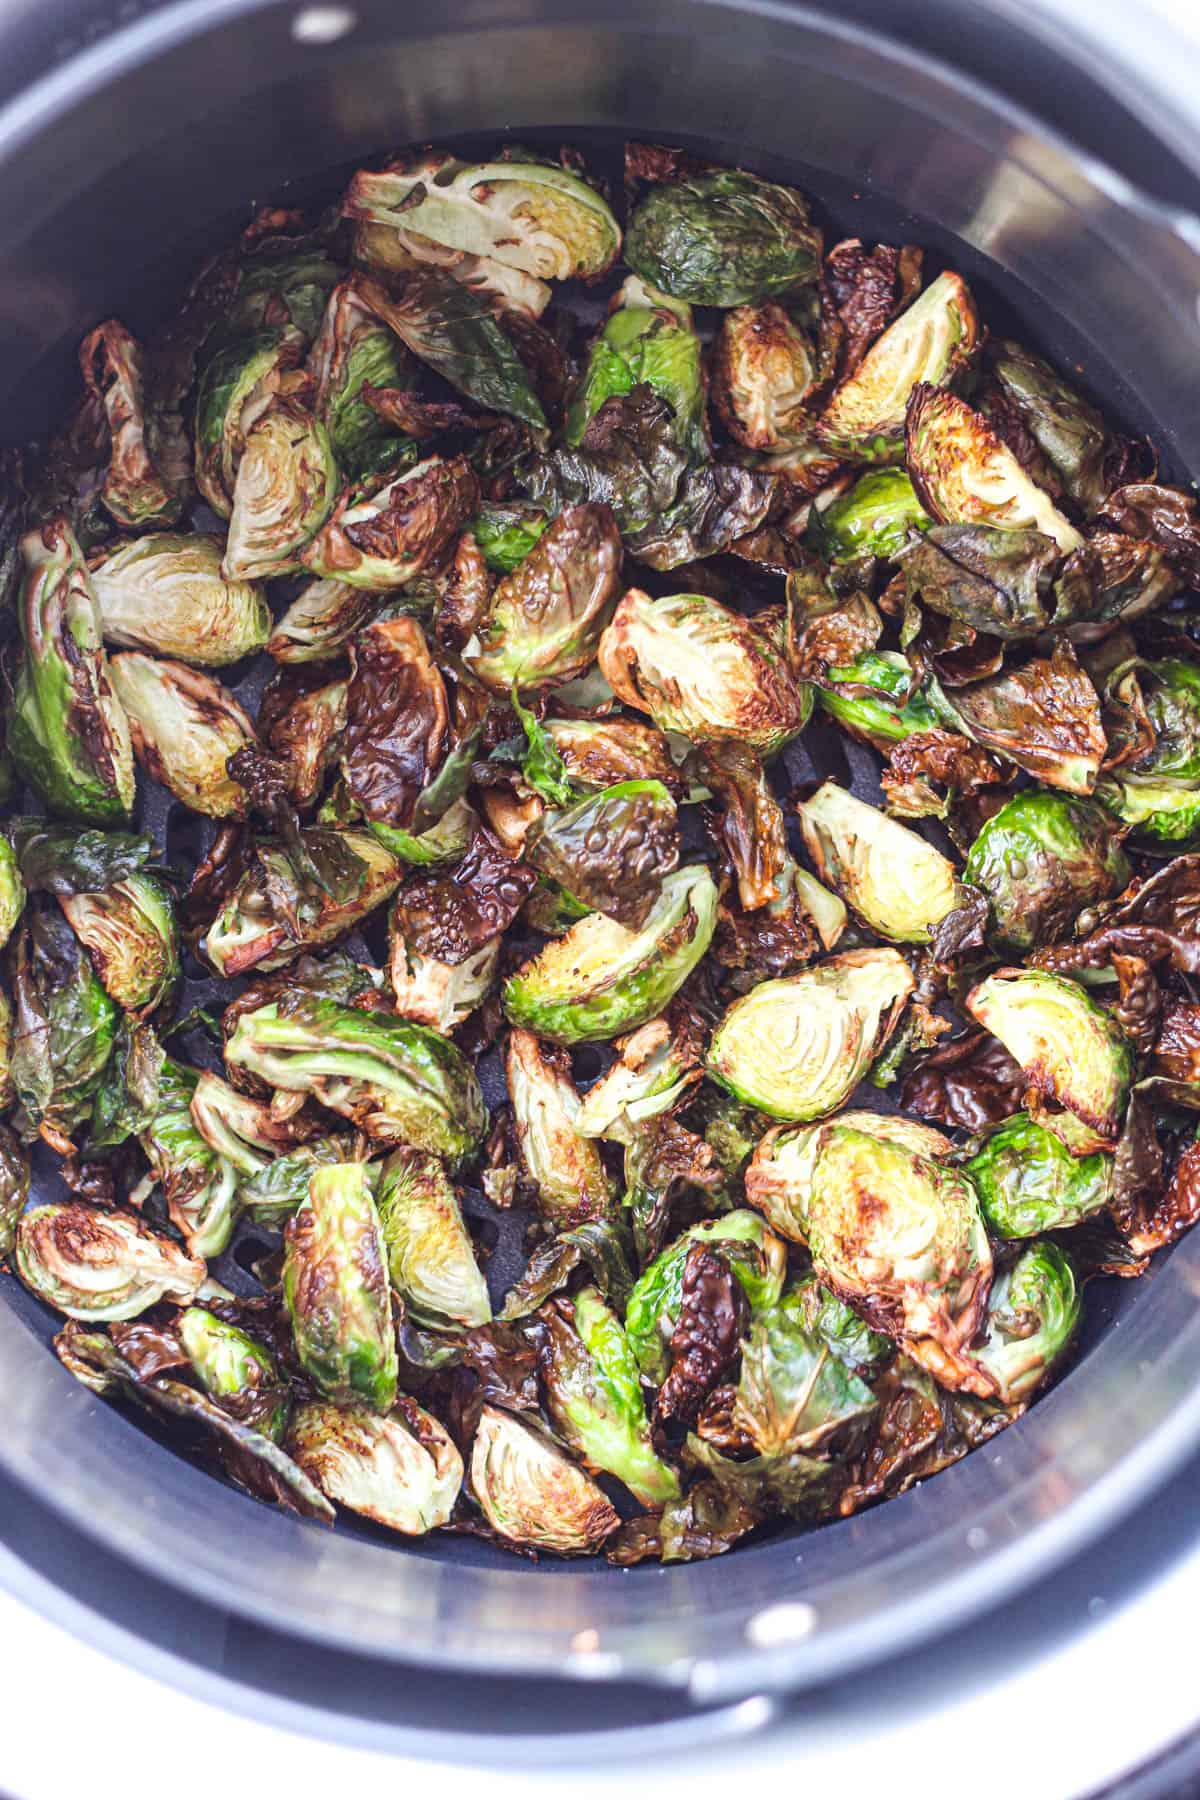 Air fryer brussels sprouts in a roasting basket